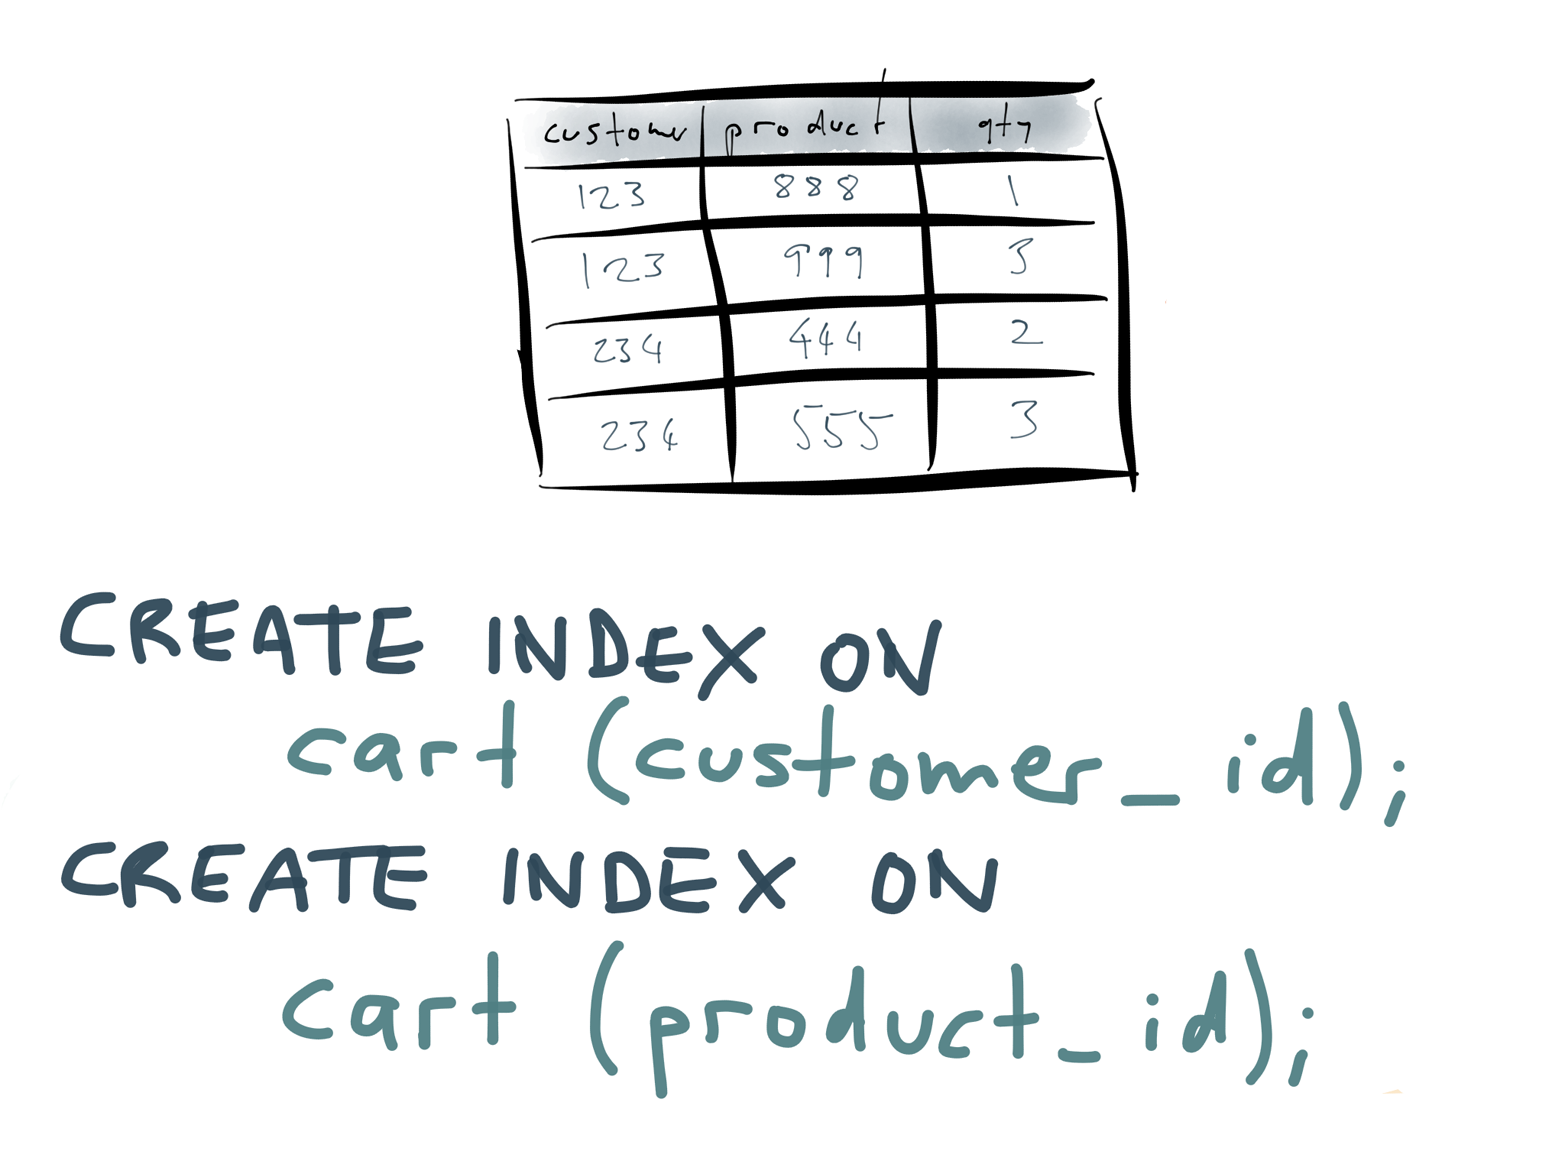 Secondary indexes allow you to efficiently look up rows by their value in a particular column.